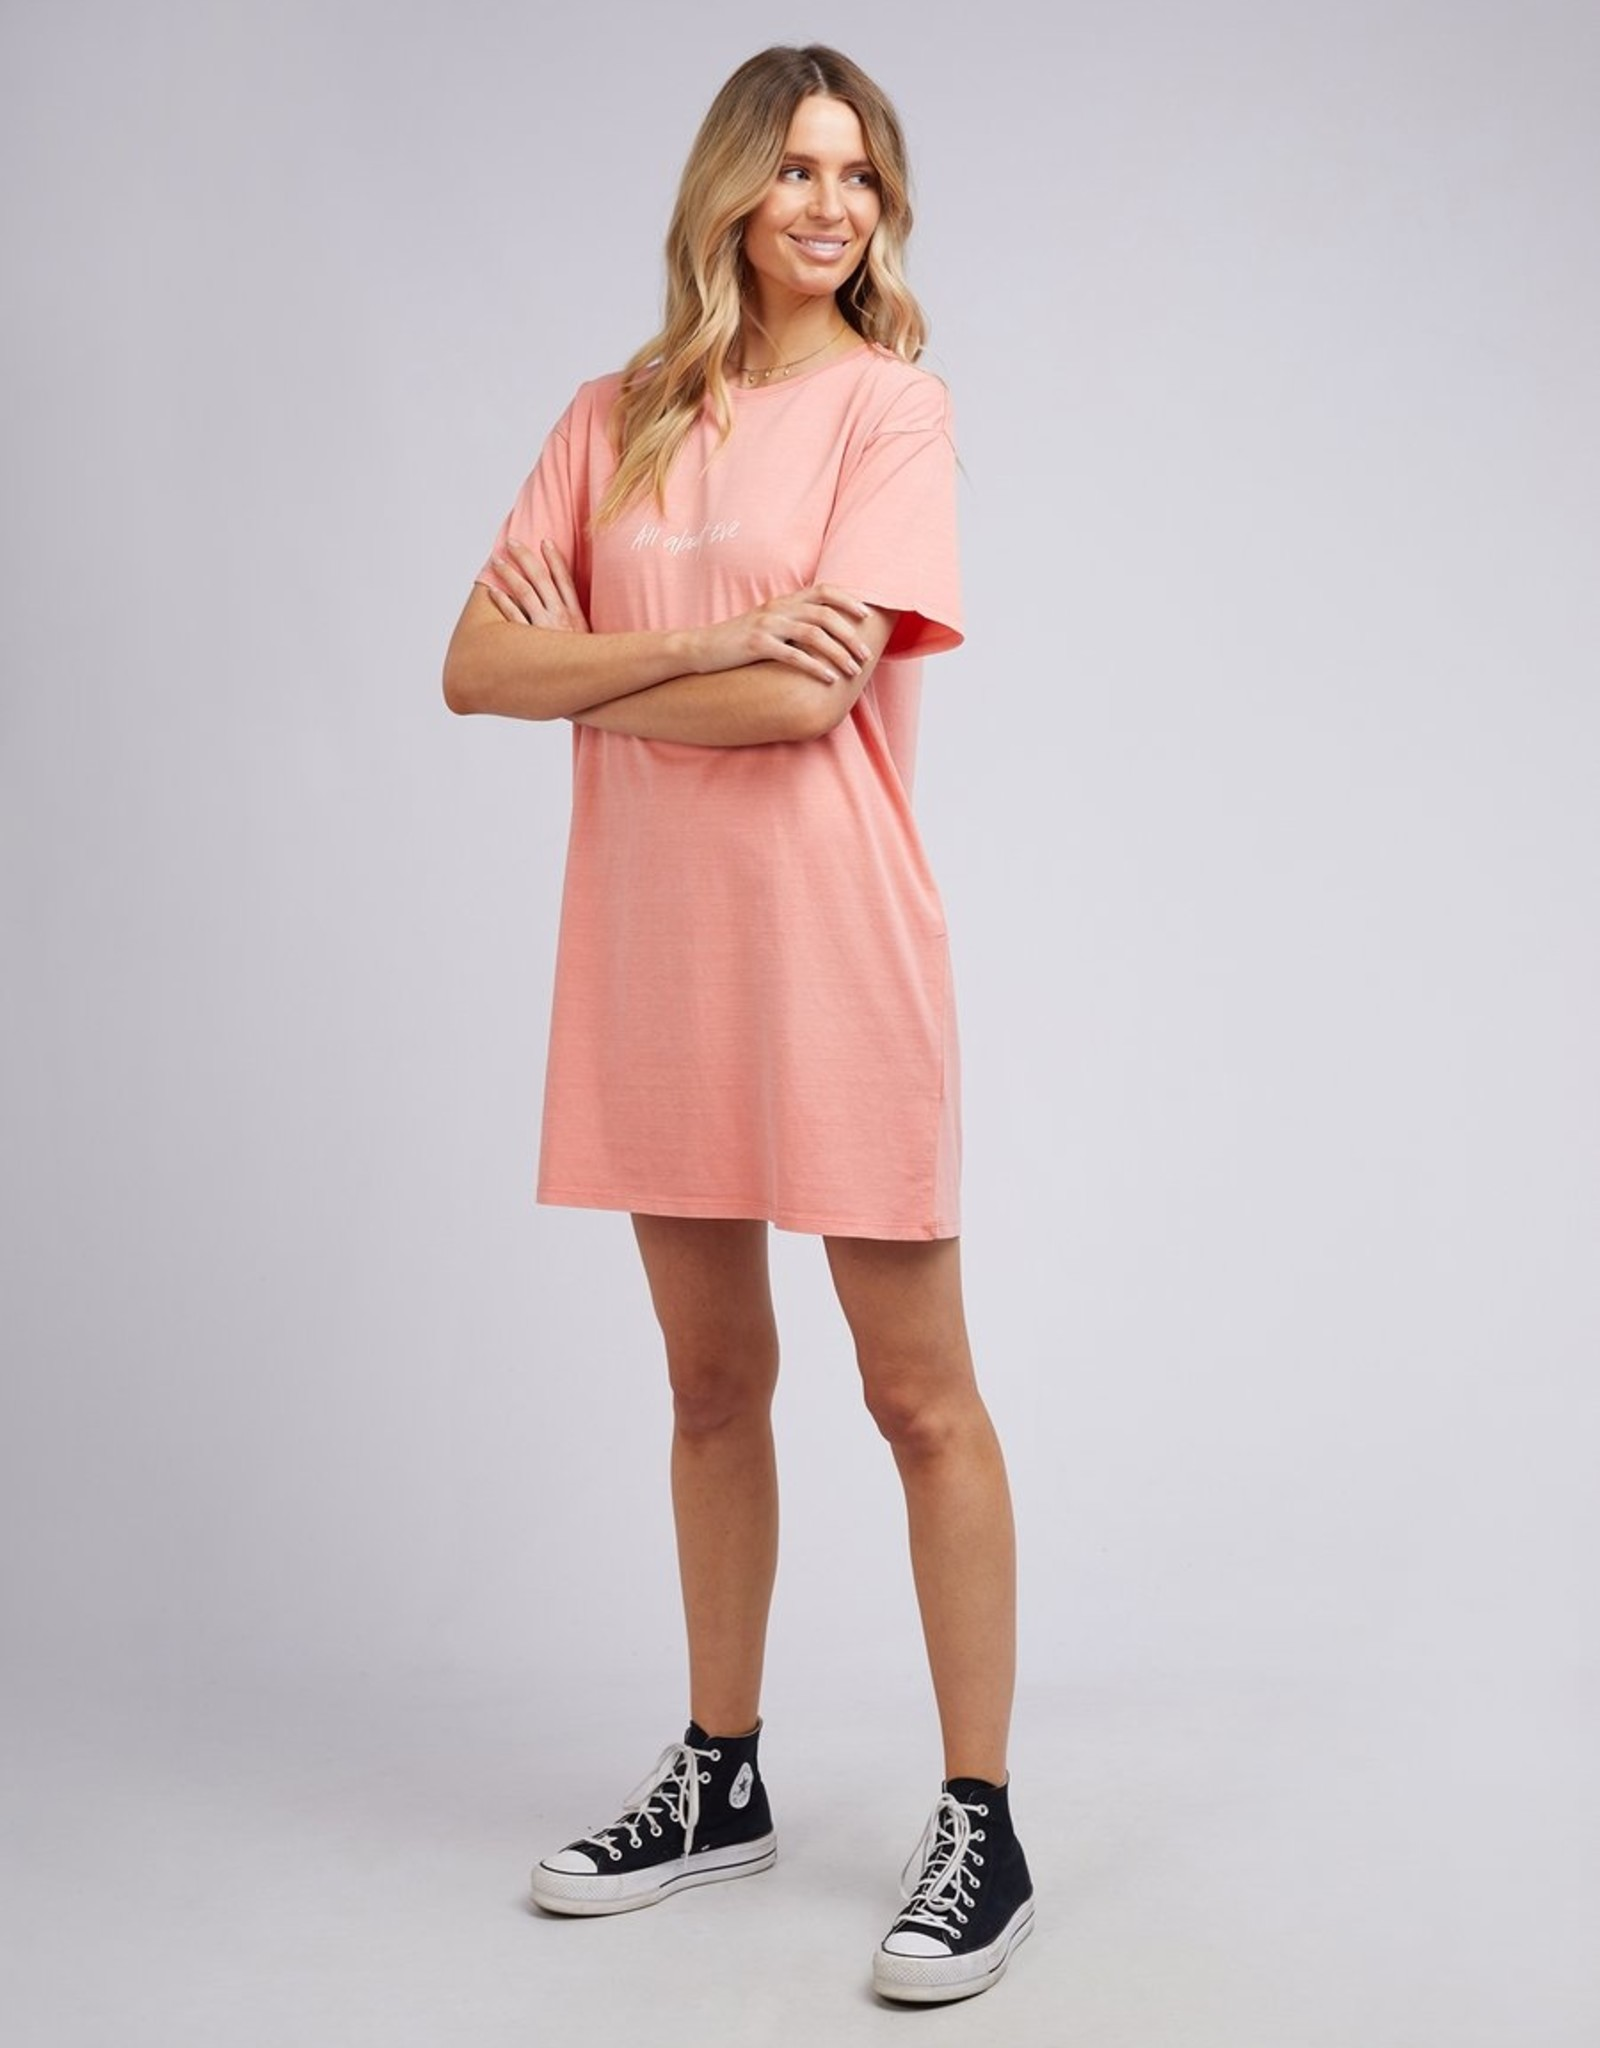 ALL ABOUT EVE Essential Eve Tee Dress